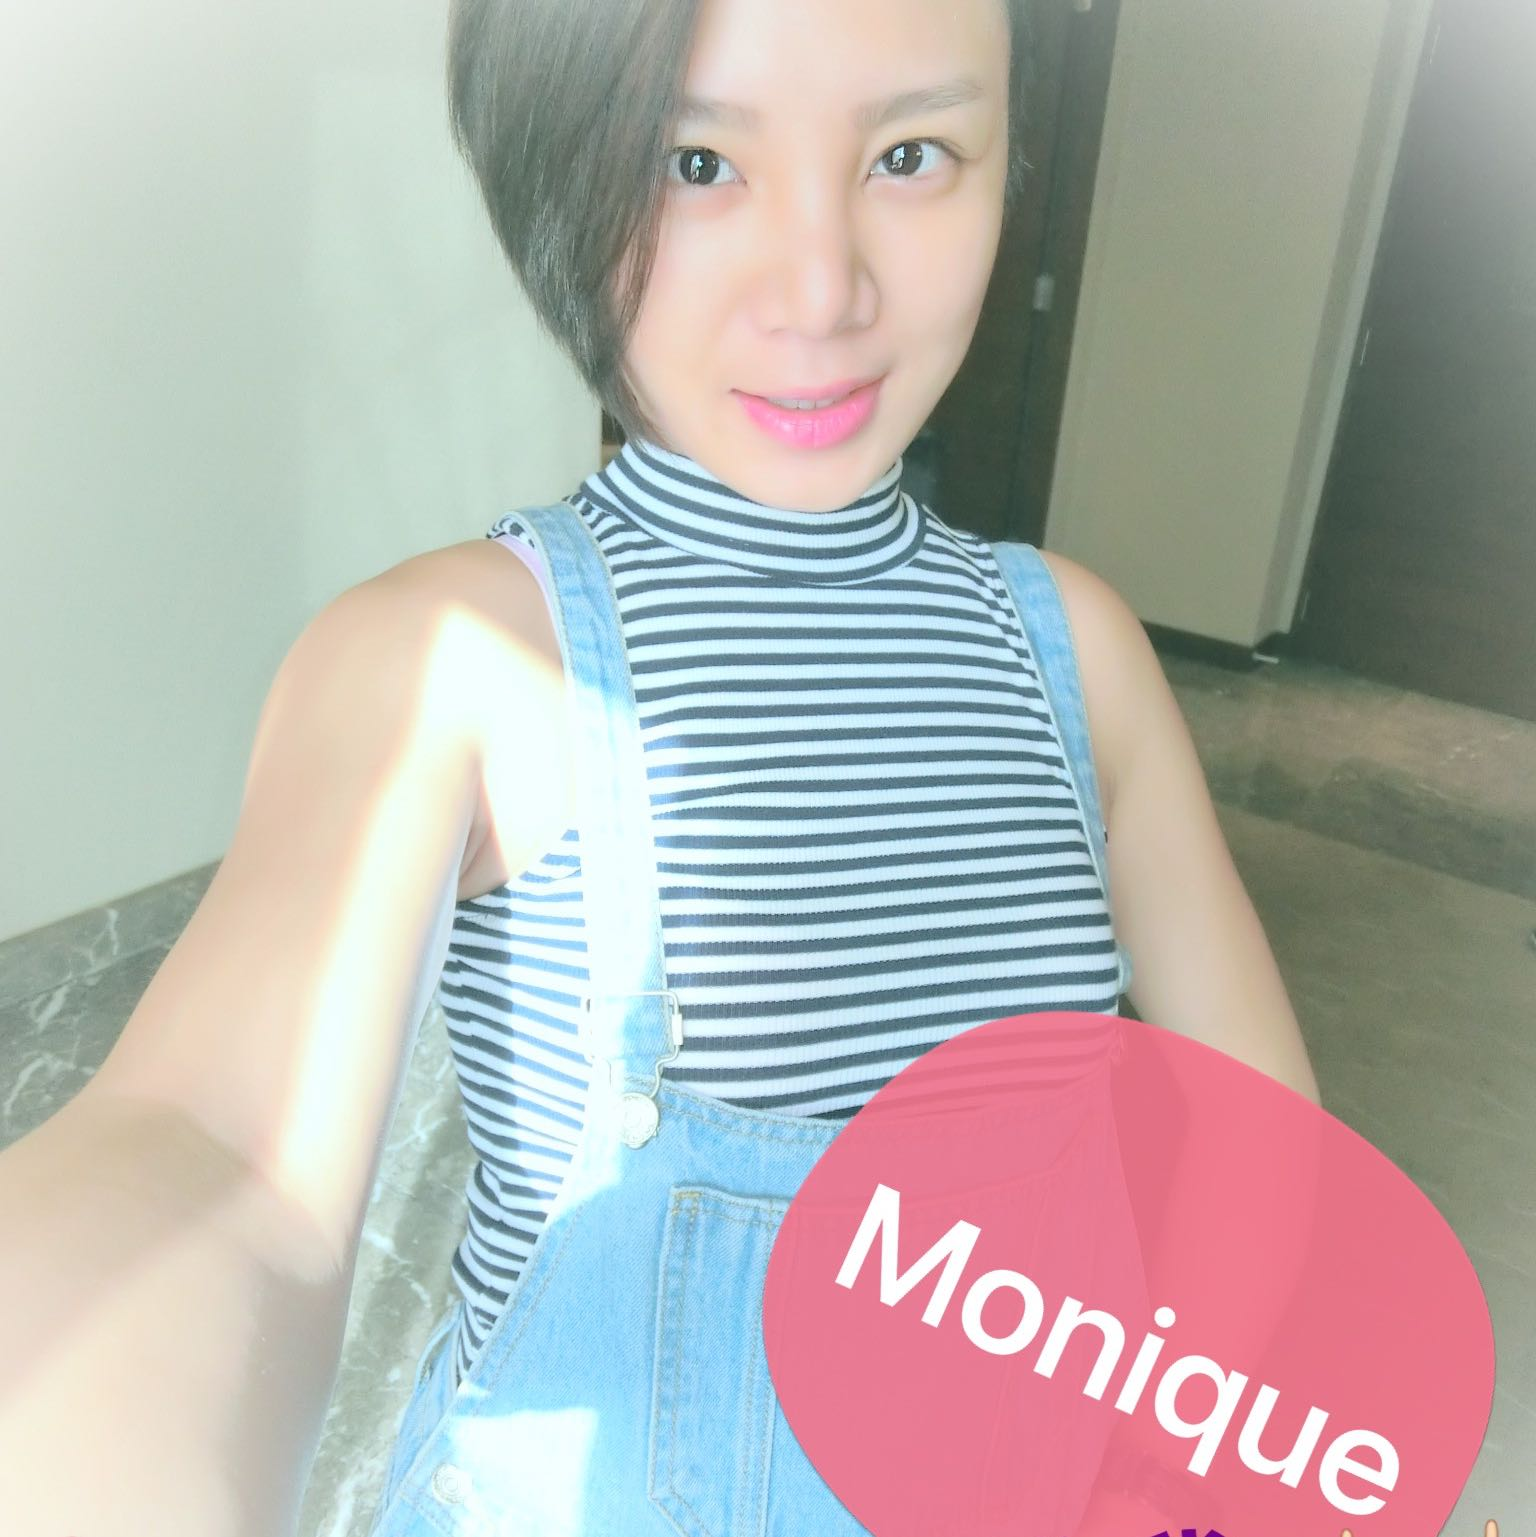 moniquewong28